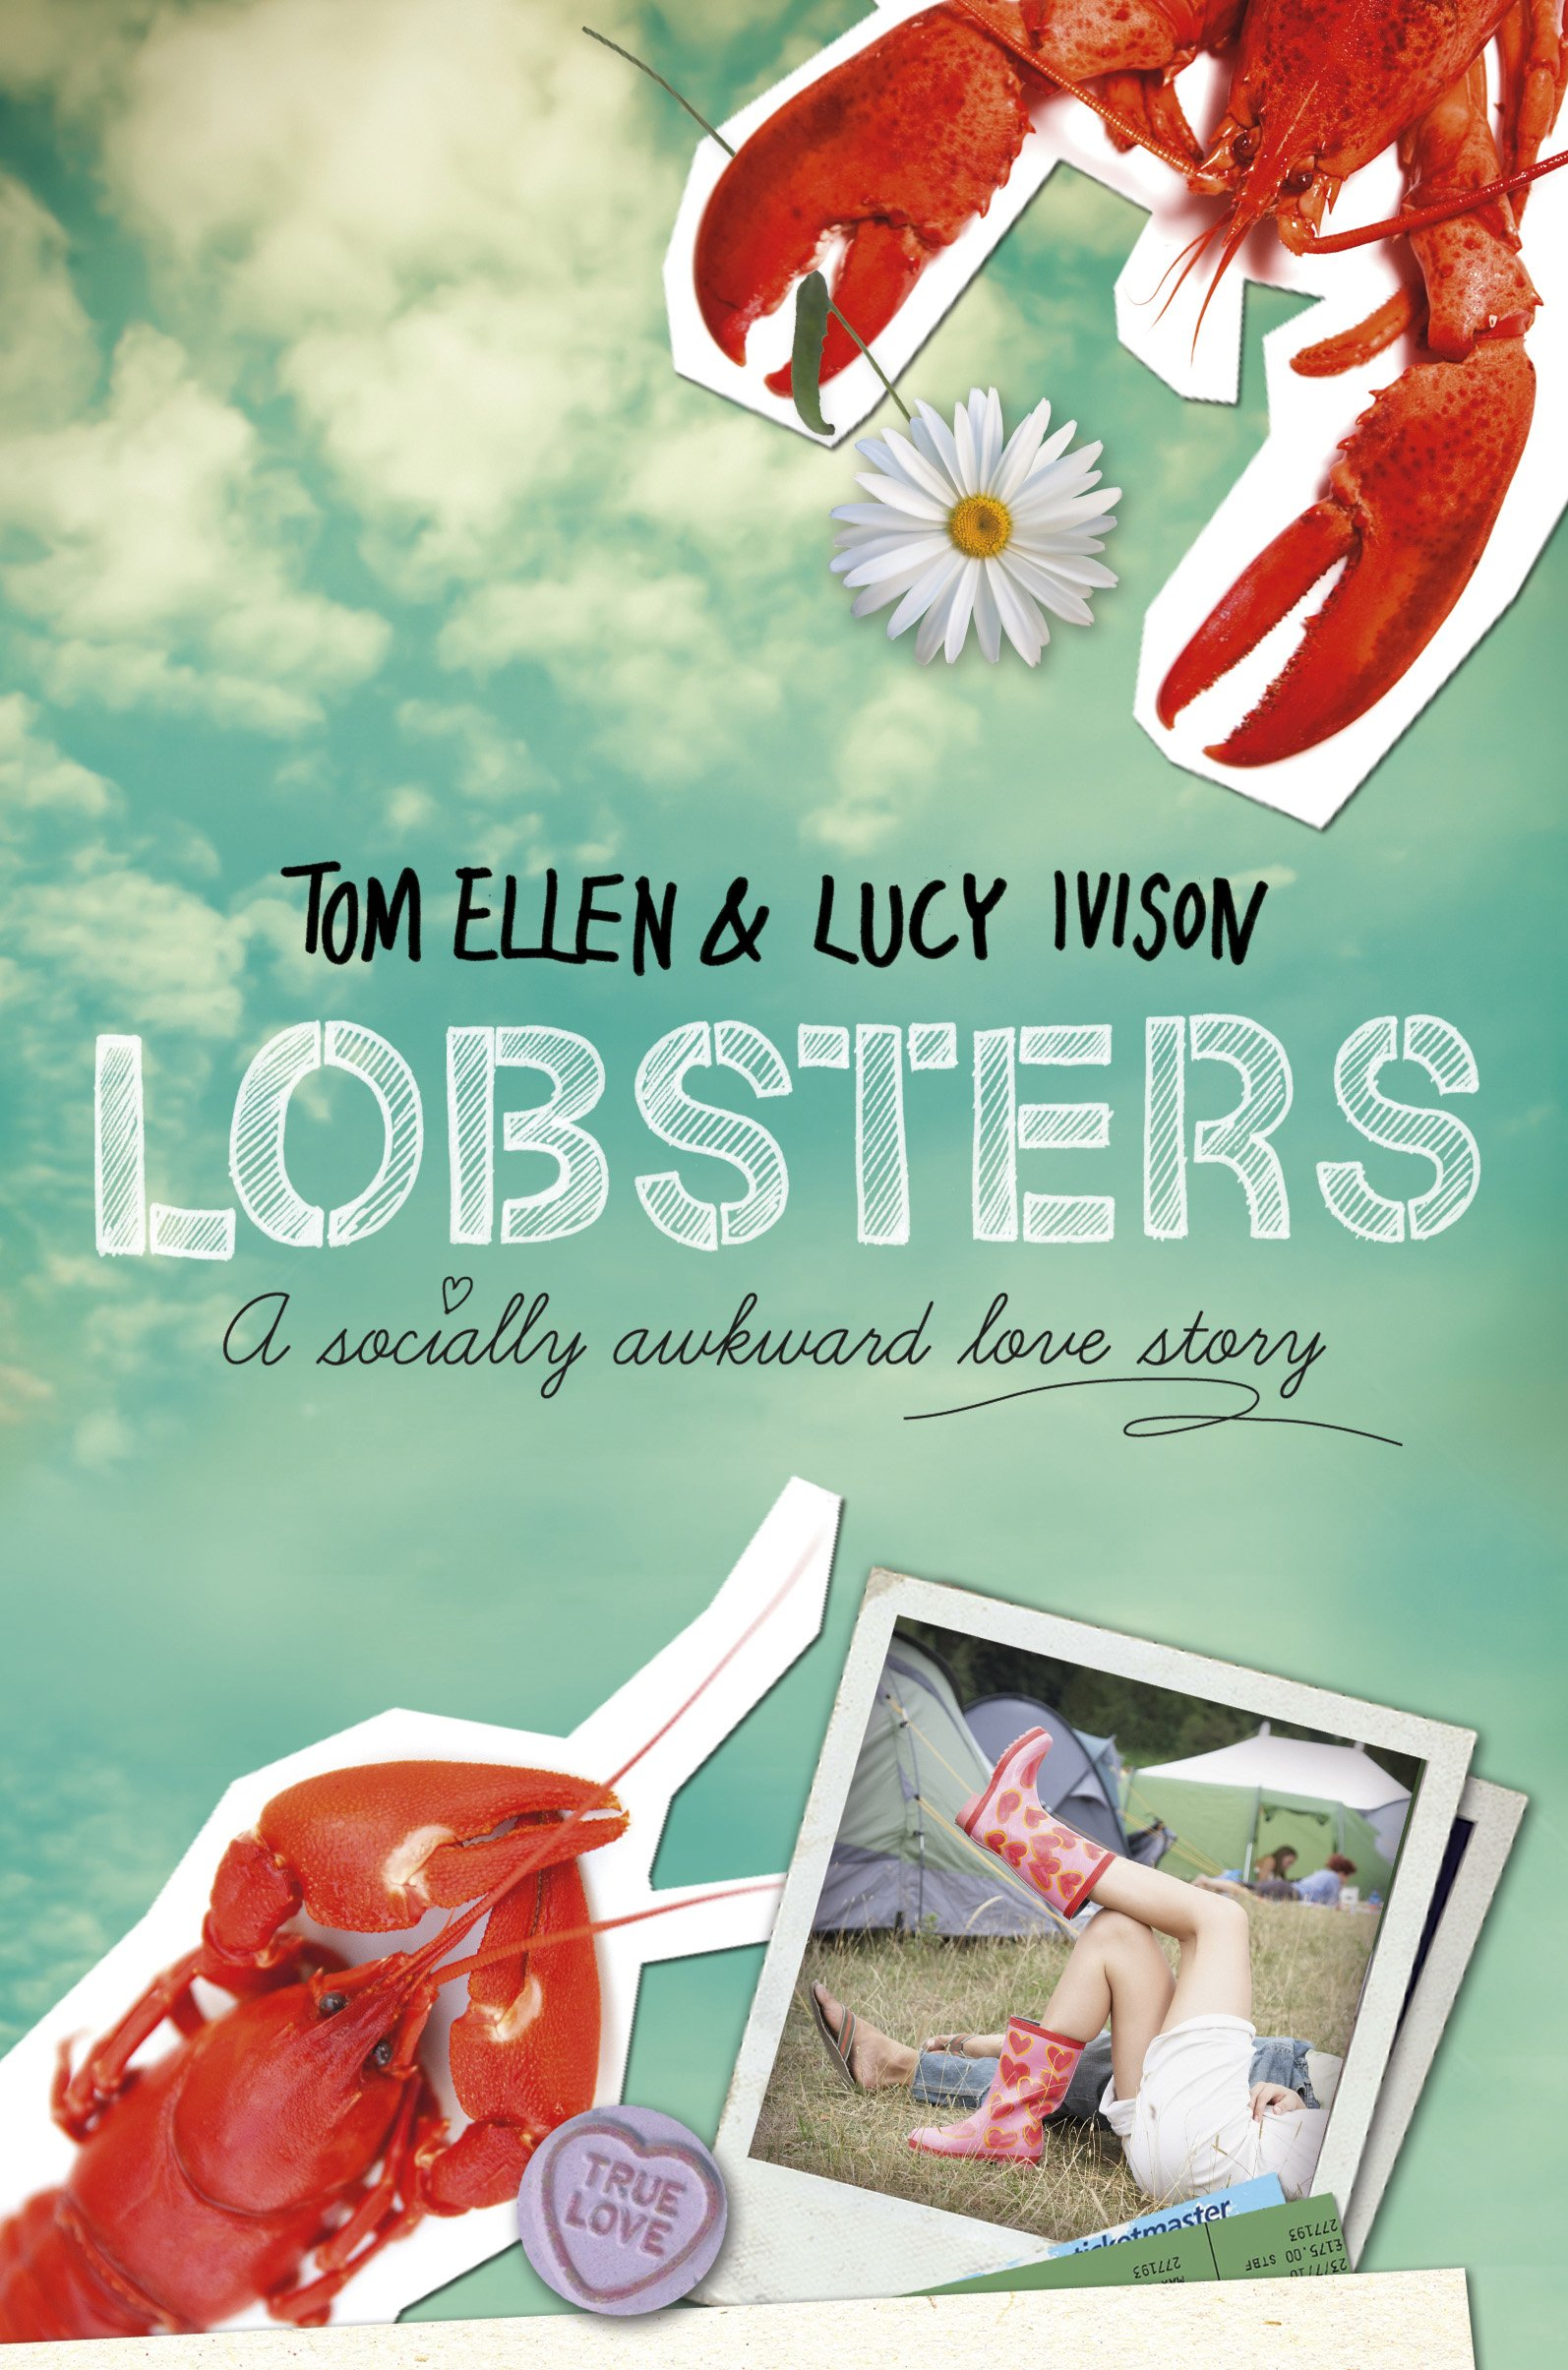 Buy LOBSTERS by Lucy Ivison and Tom Ellen